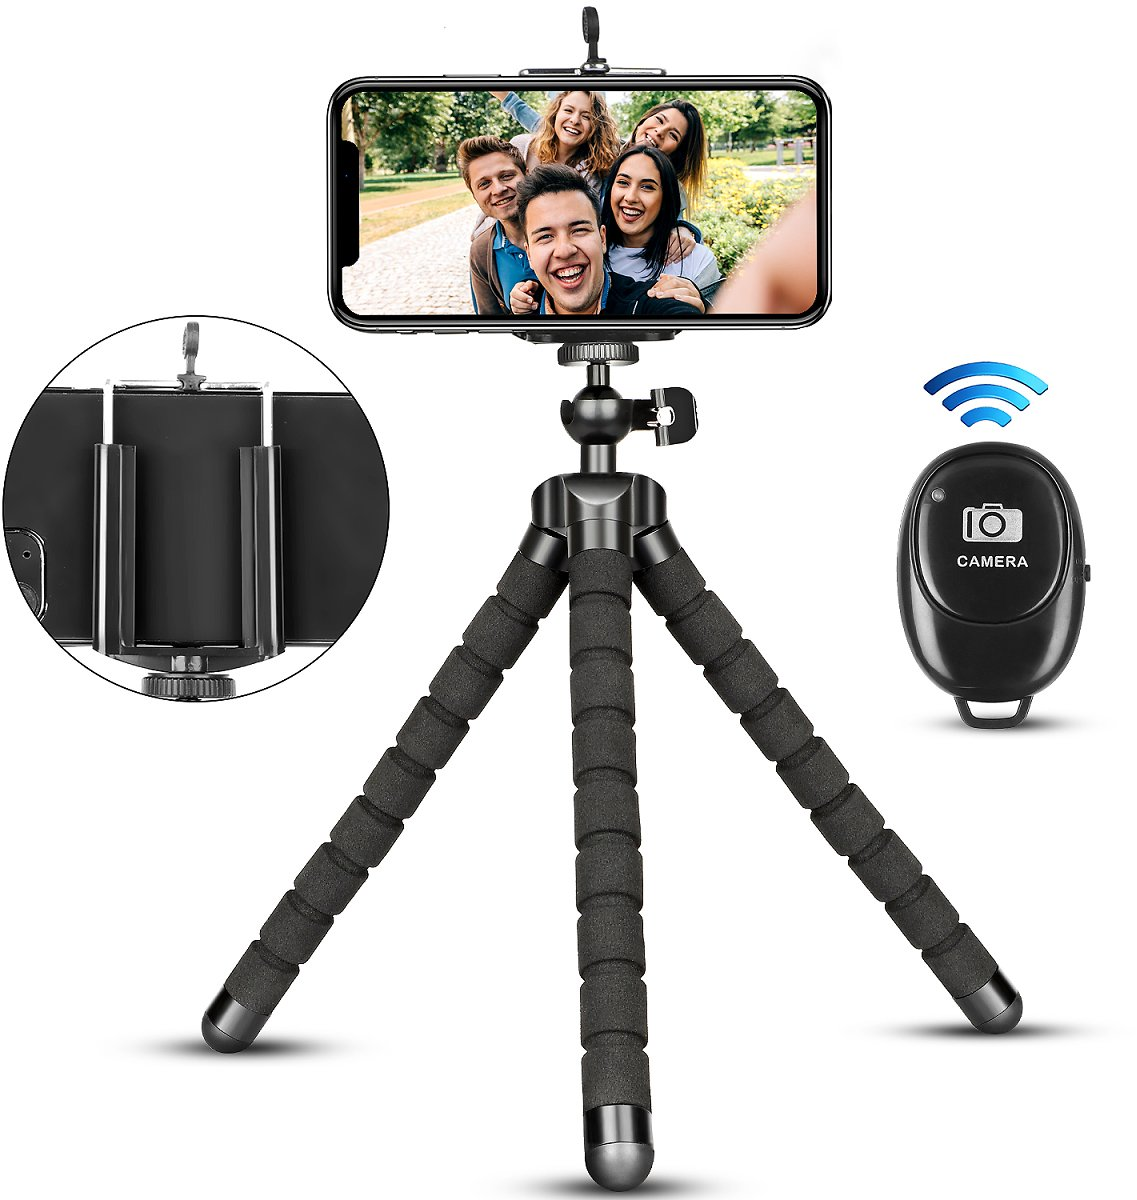 (Only $8.99) Flexible Phone Tripod with Wireless Remote for iPhone 12 11 Pro Xs MAX XR X SE 8 7 6S Plus Android